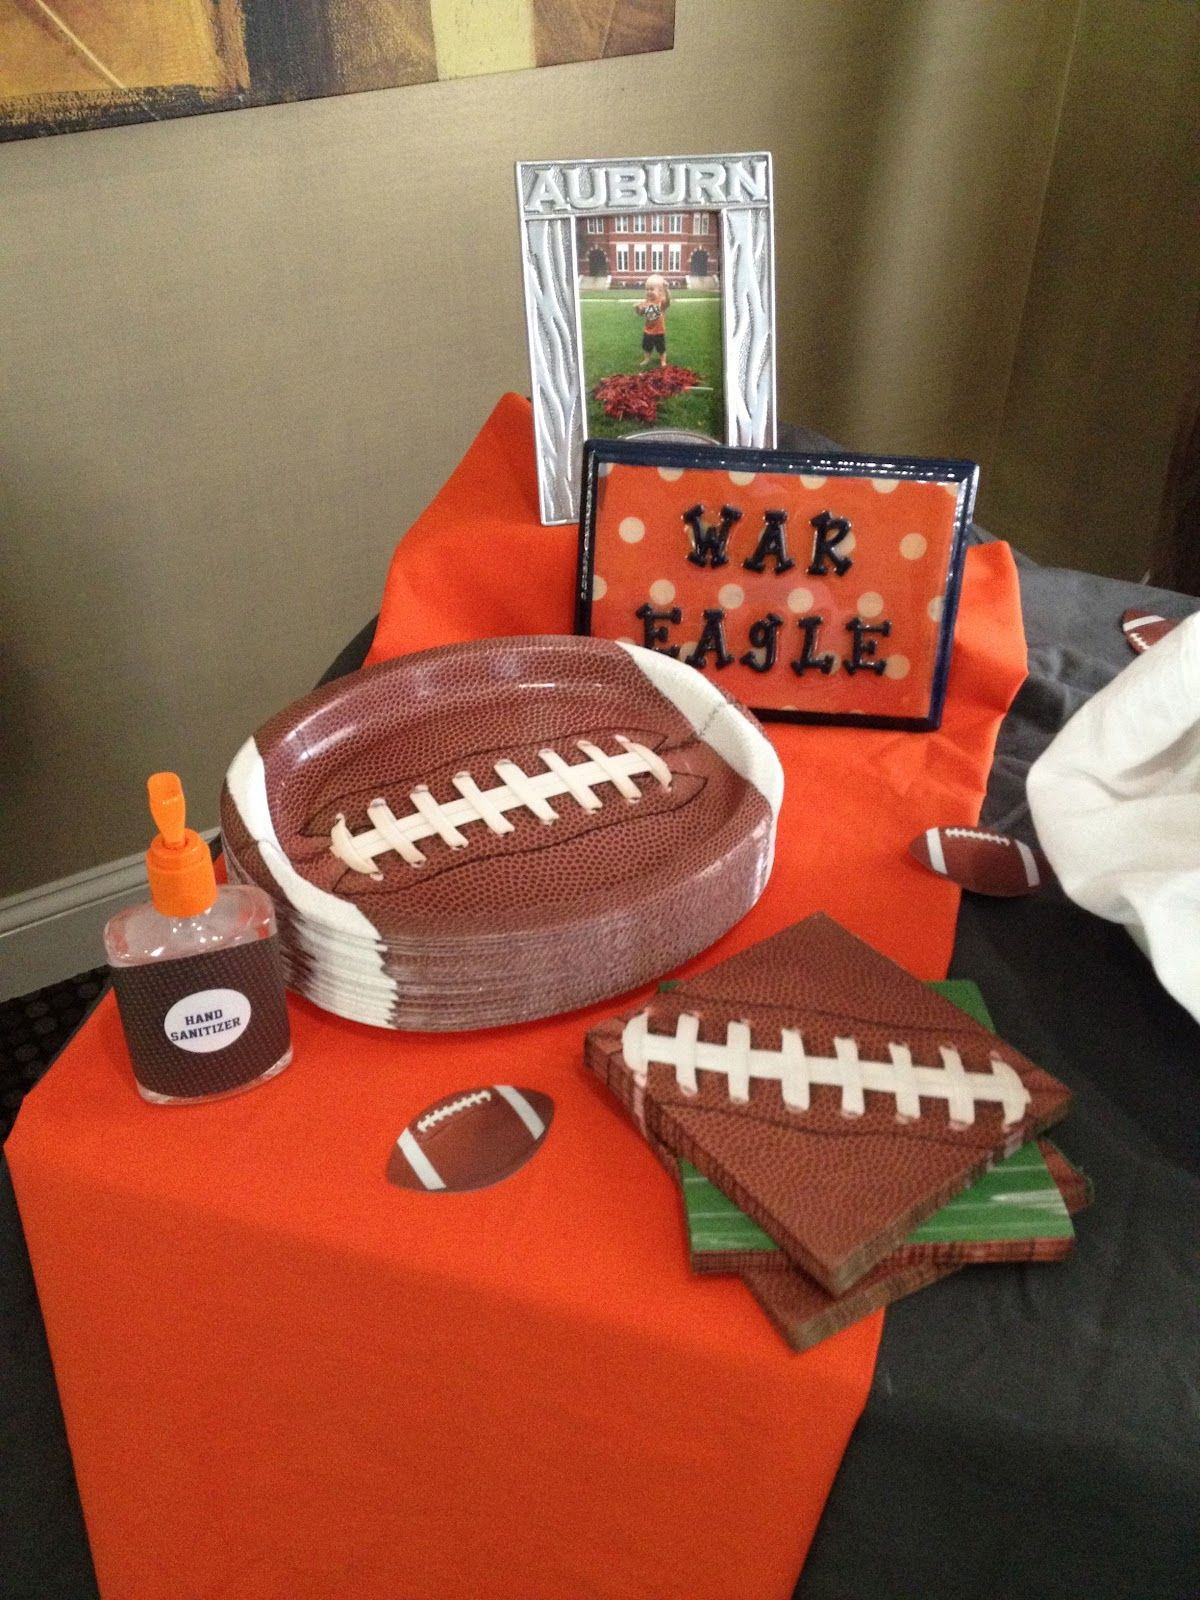 centerpieces decorations super decor could or these bowl luxury banquet ideas party for use of football